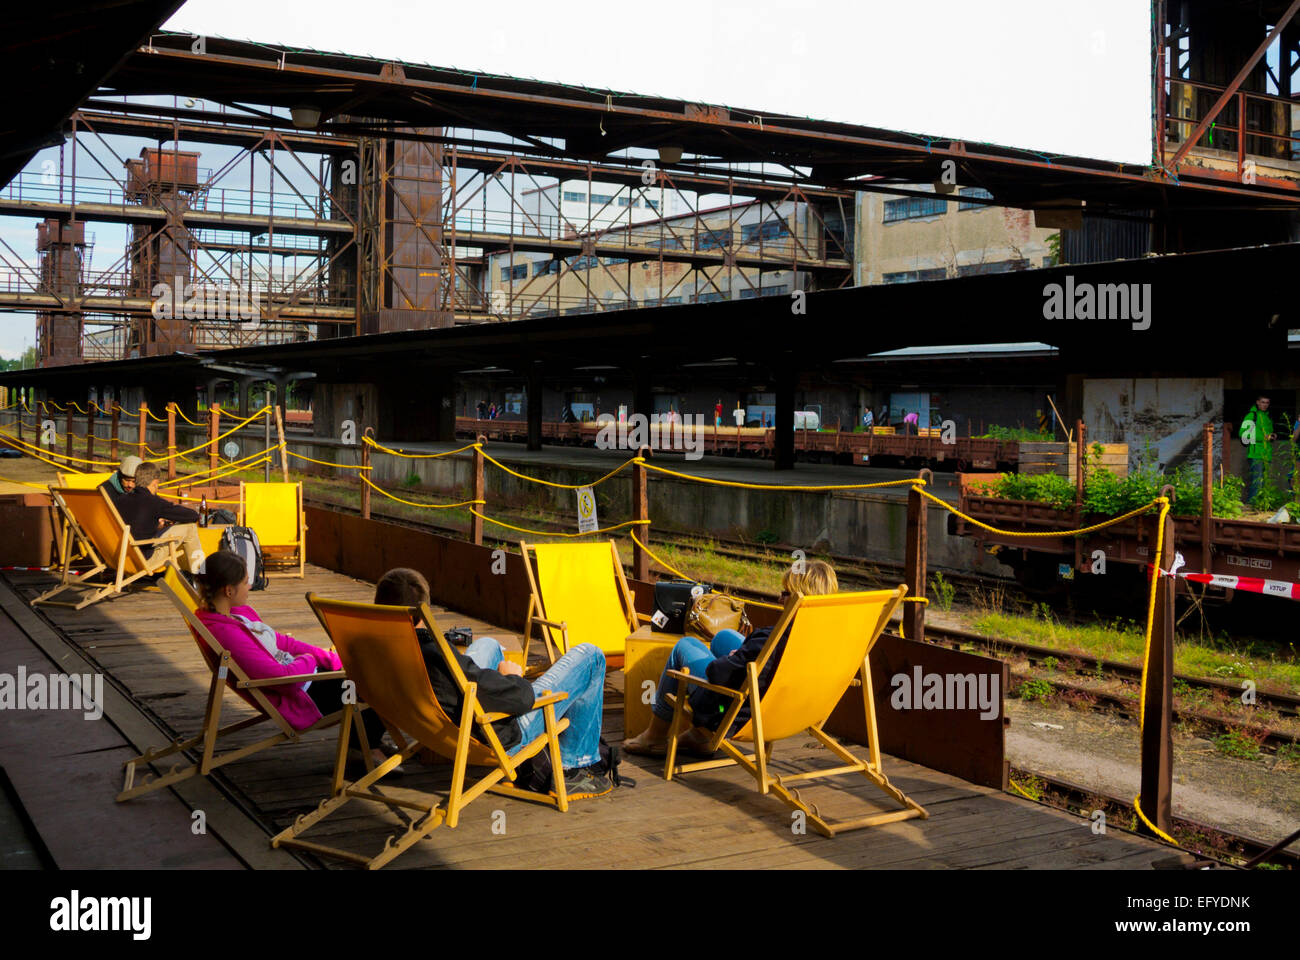 Bar terrace, Nakladove nadrazi Zizkov, Zizkov district former cargo railway station, Prague, Czech Republic, Europe - Stock Image